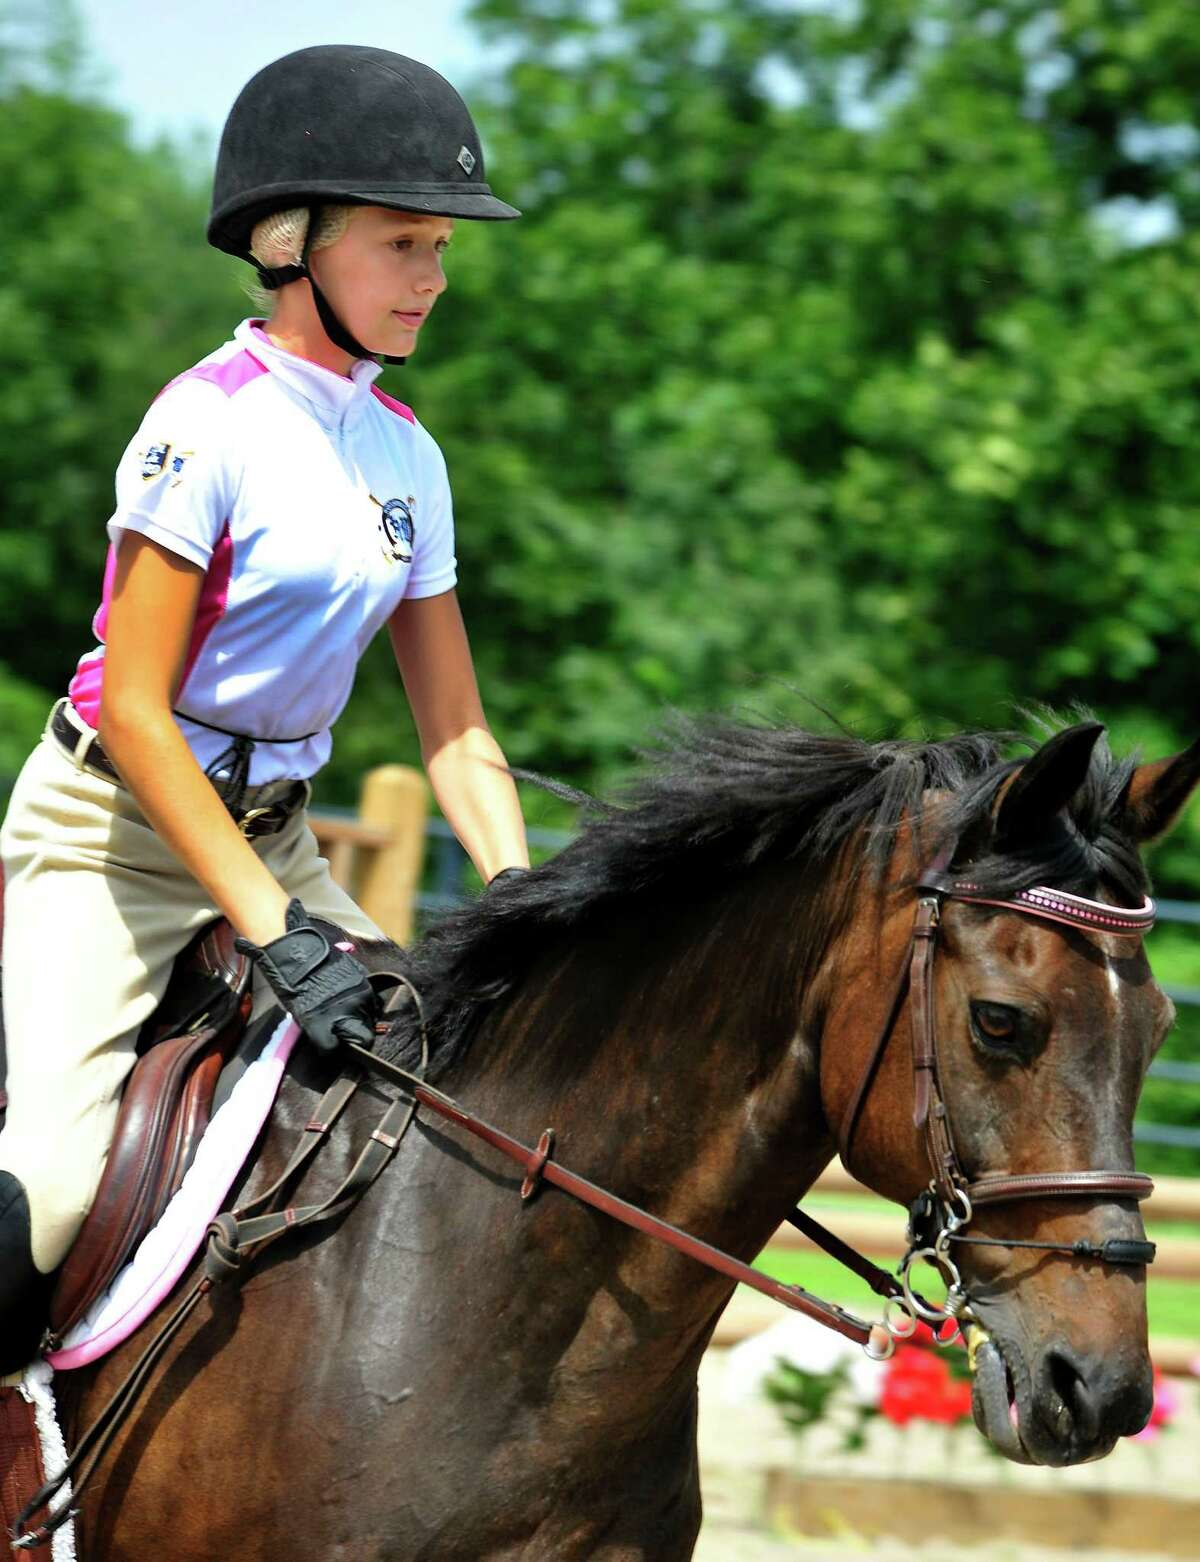 Mia Matuschkowitz-Mannis, 11, rides Just Do It, in t he Second Company Governor's Horse Guard Annual Horse Show in Newtown, Conn. Sunday, July 21, 2013.